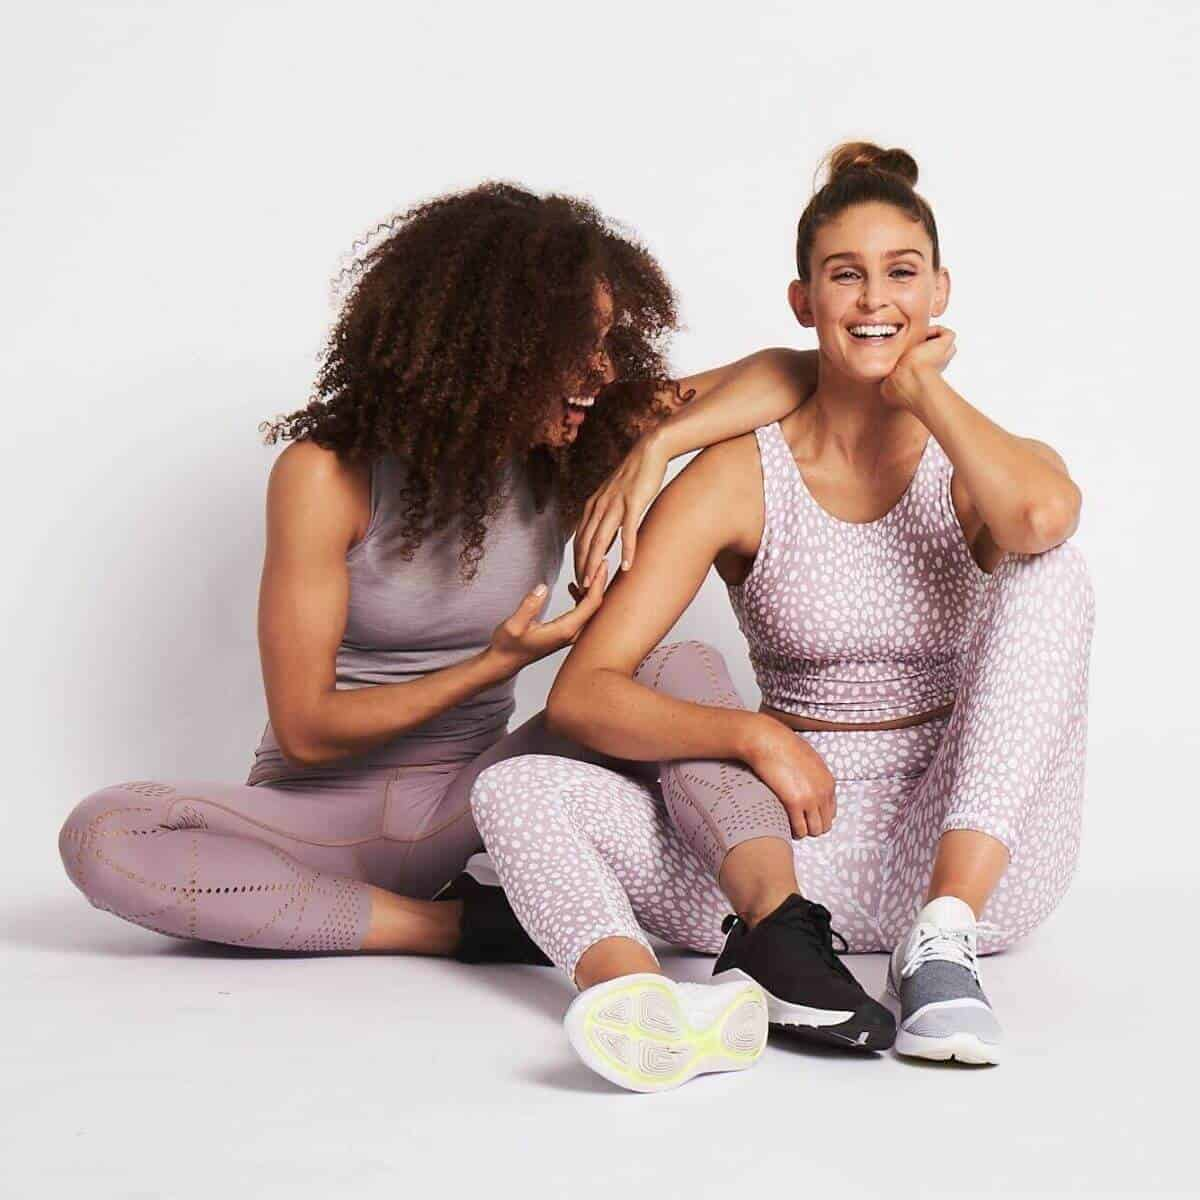 Ethical Activewear Brands For A More Sustainable Workout Image Credit - Nimble #ethicalfashion #activewear